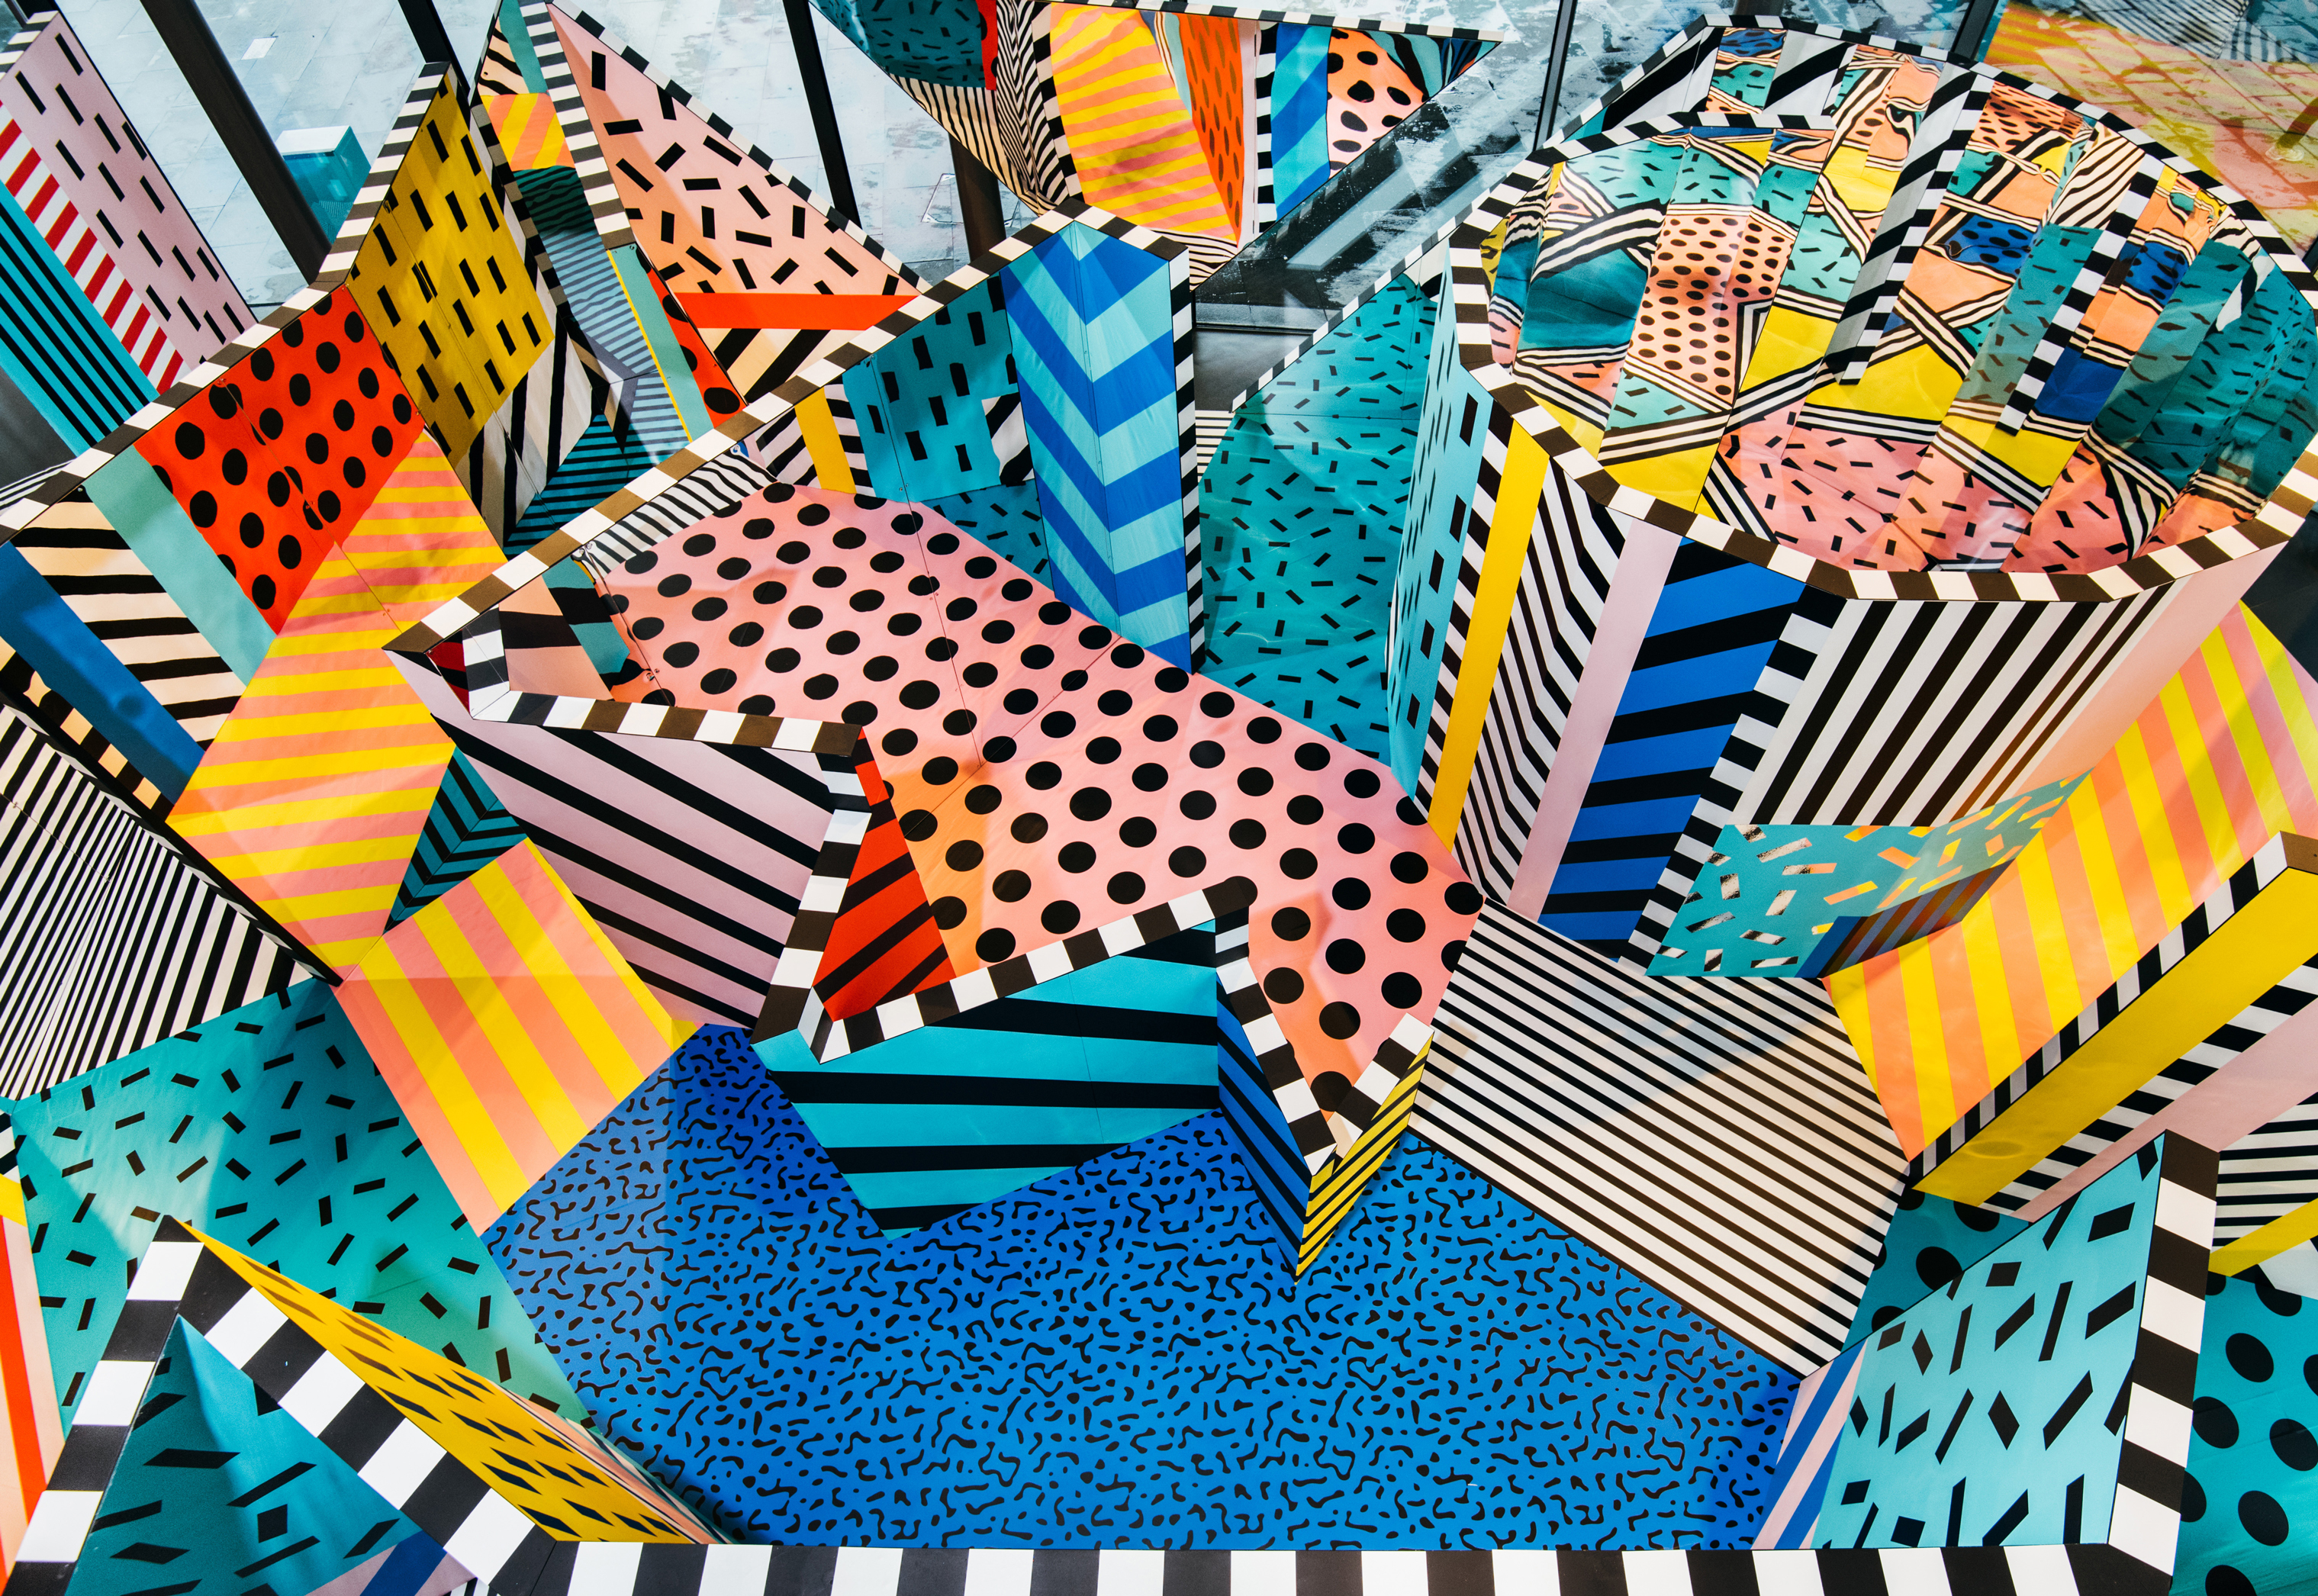 PURSUE PLAY - WALALA X PLAY BY CAMILLE WALALA FOR NOW GALLERY, PHOTOGRAPHY BY CHARLES EMERSON ©Heimtextil trend book